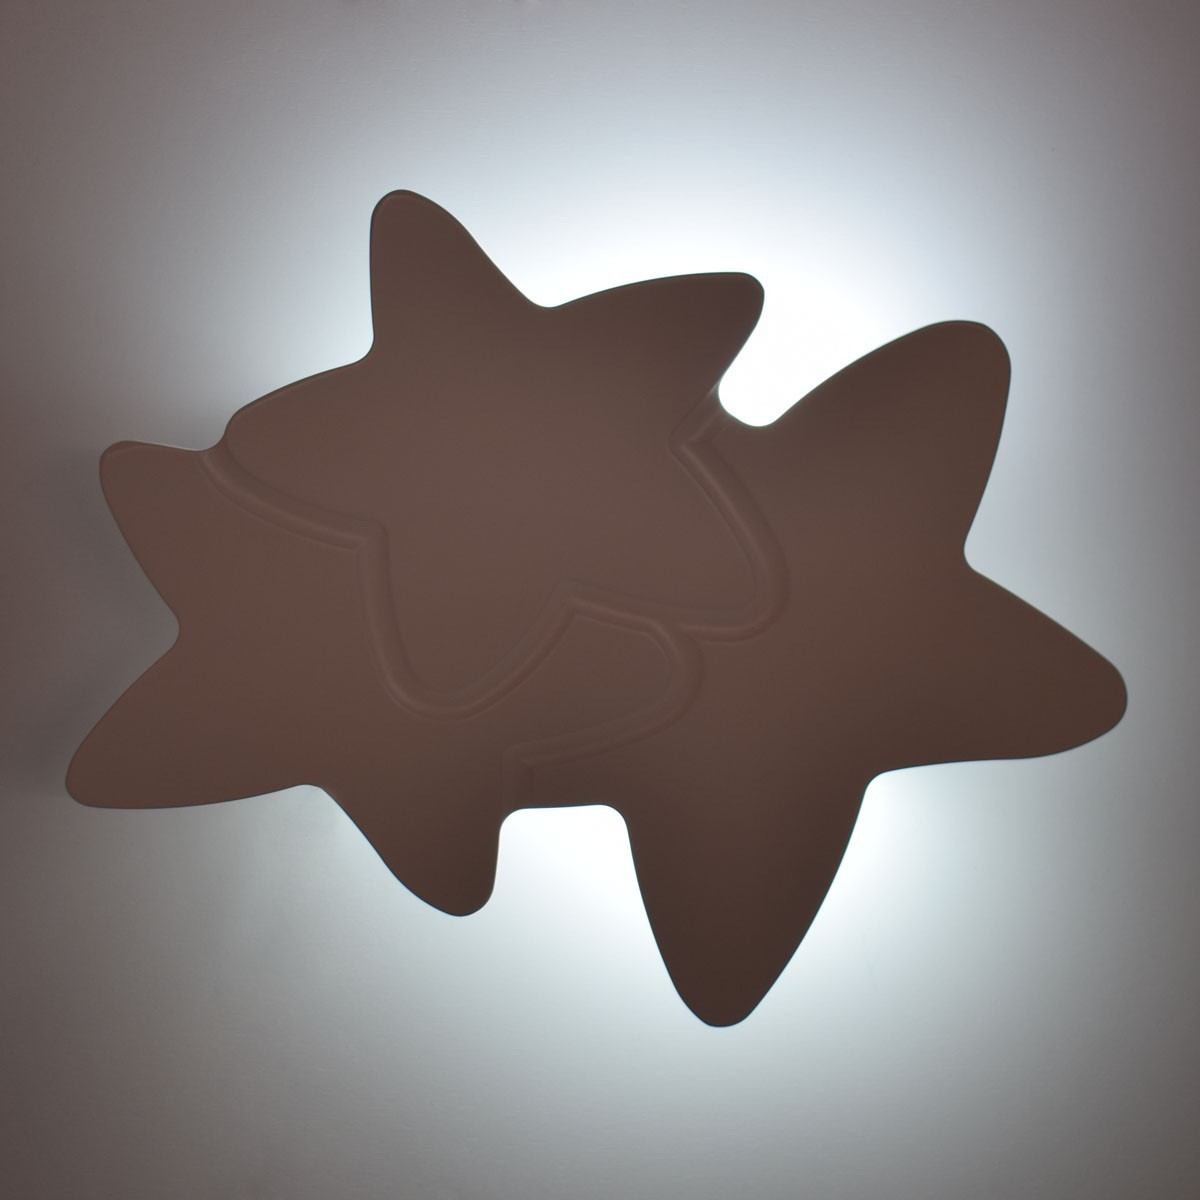 Lampara de pared infantil estrellas env o 24h gratis - Lamparas pared infantiles ...